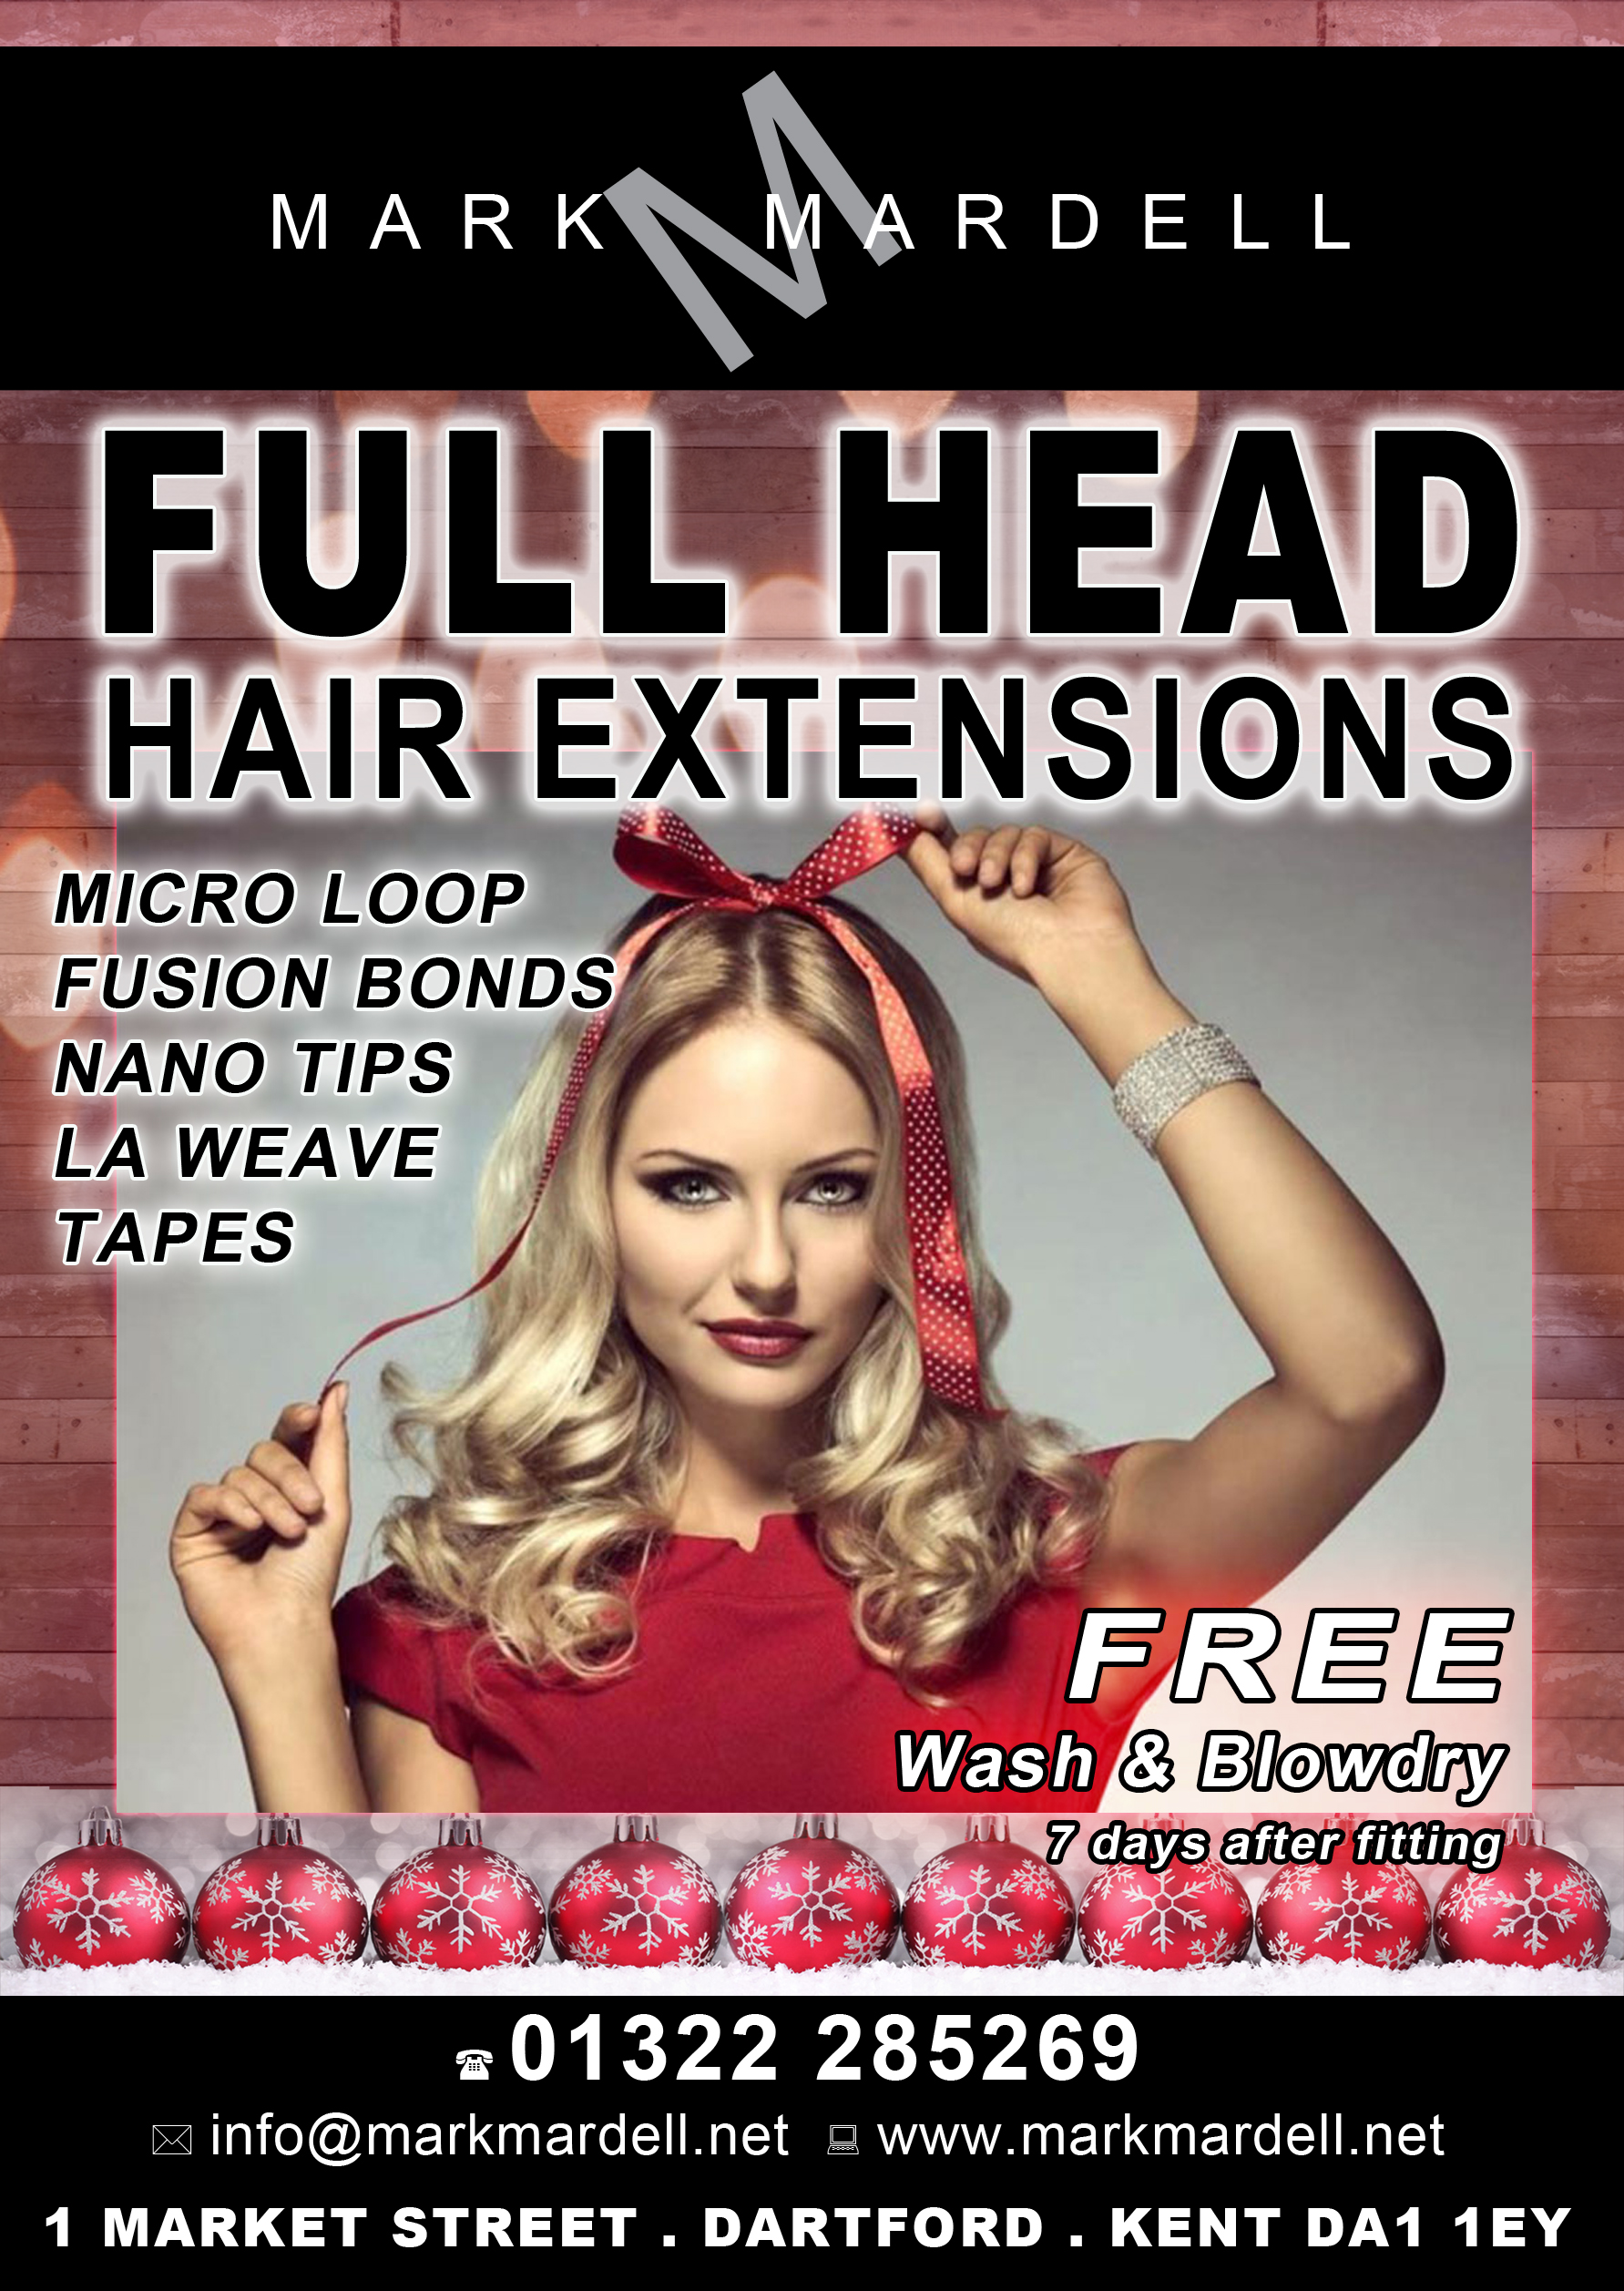 Hair Extensions Deals For Christmas Mark Mardell